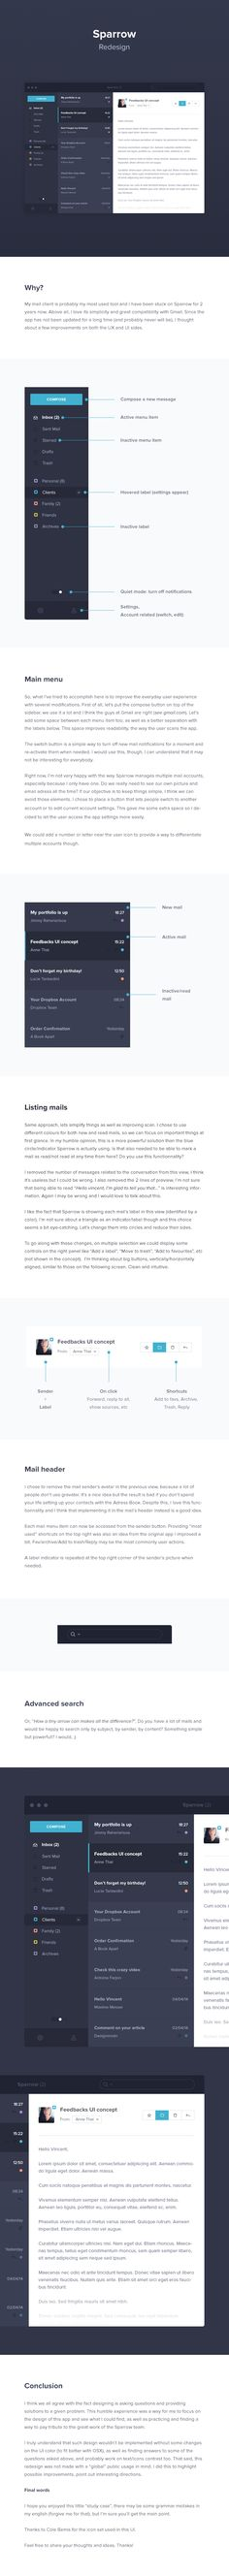 Sparrow Redesign - Case Study - by Vincent Tantardini